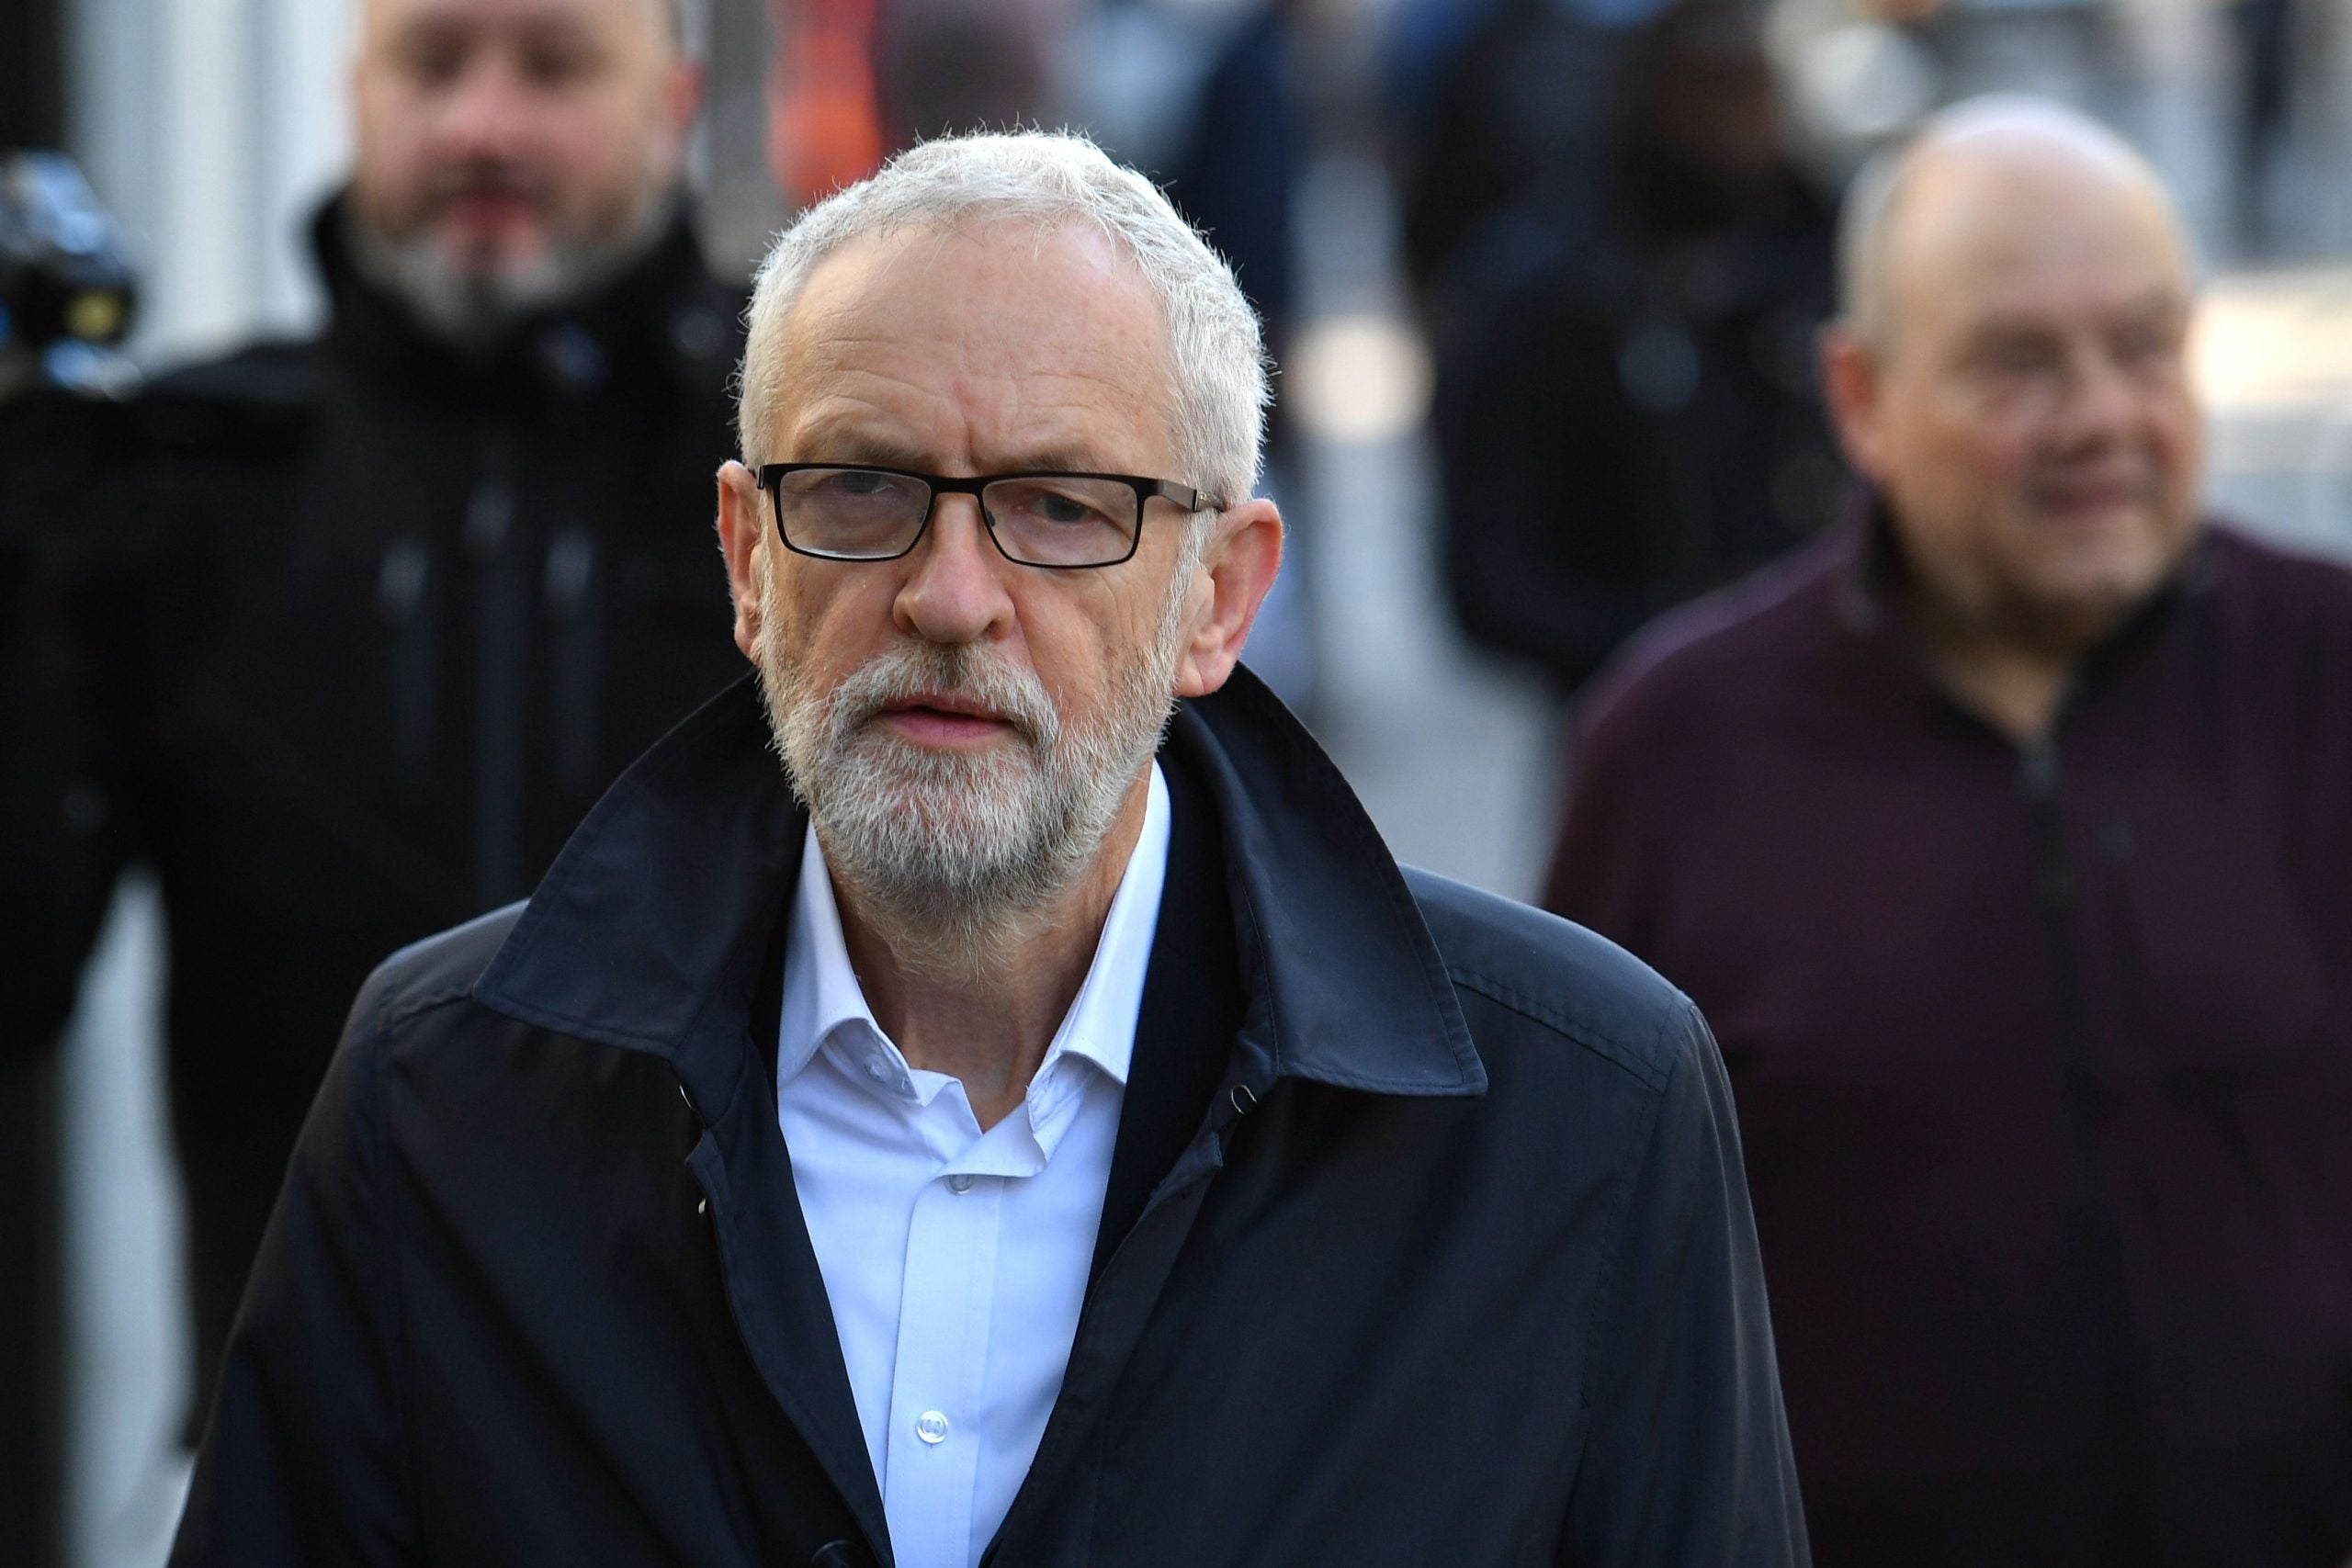 Jeremy Corbyn defied the odds in the 2017 election, but can he pull off the same trick twice?